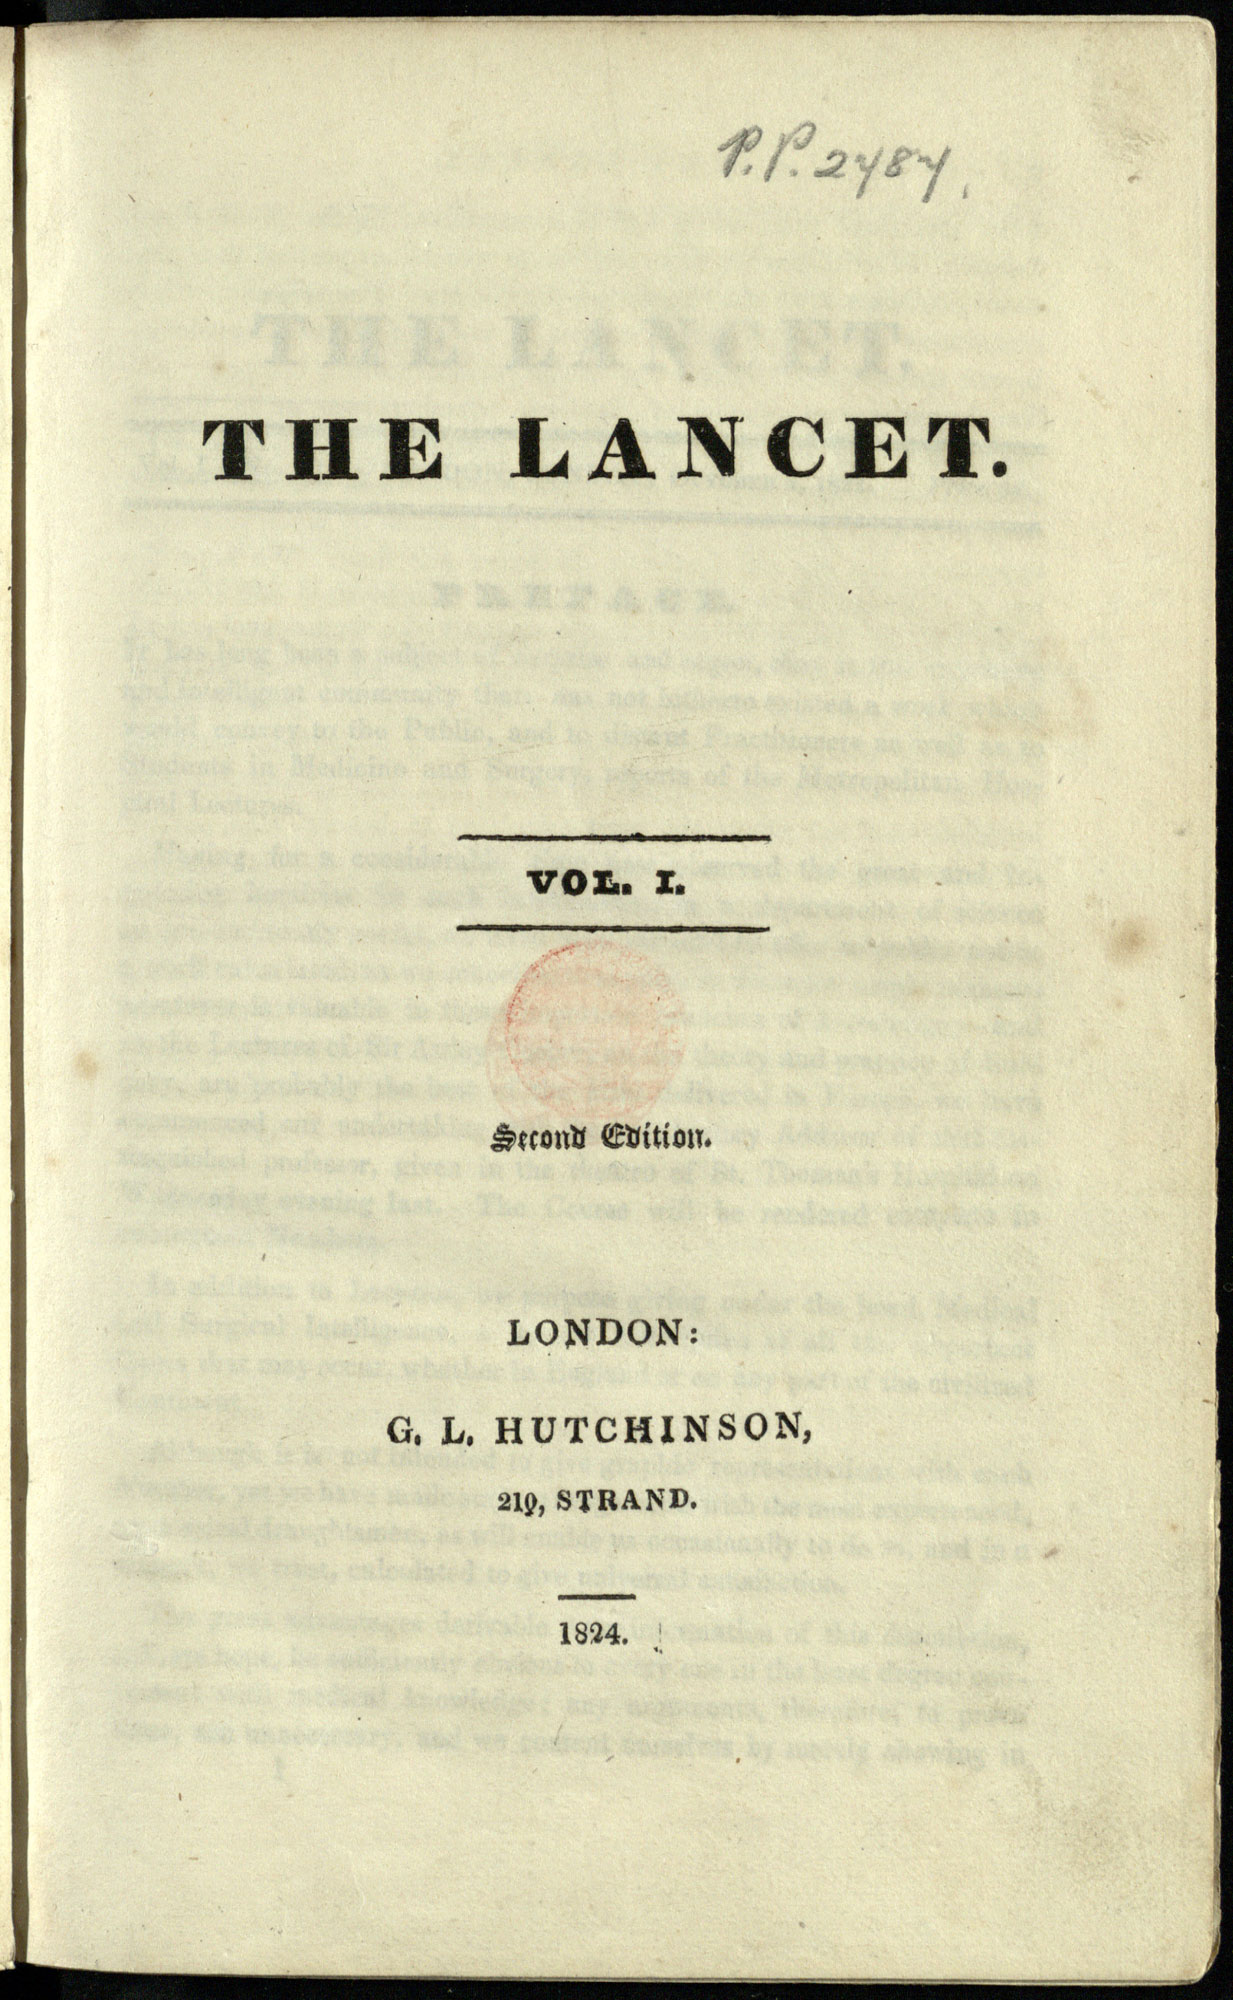 First issue of medical journal the Lancet